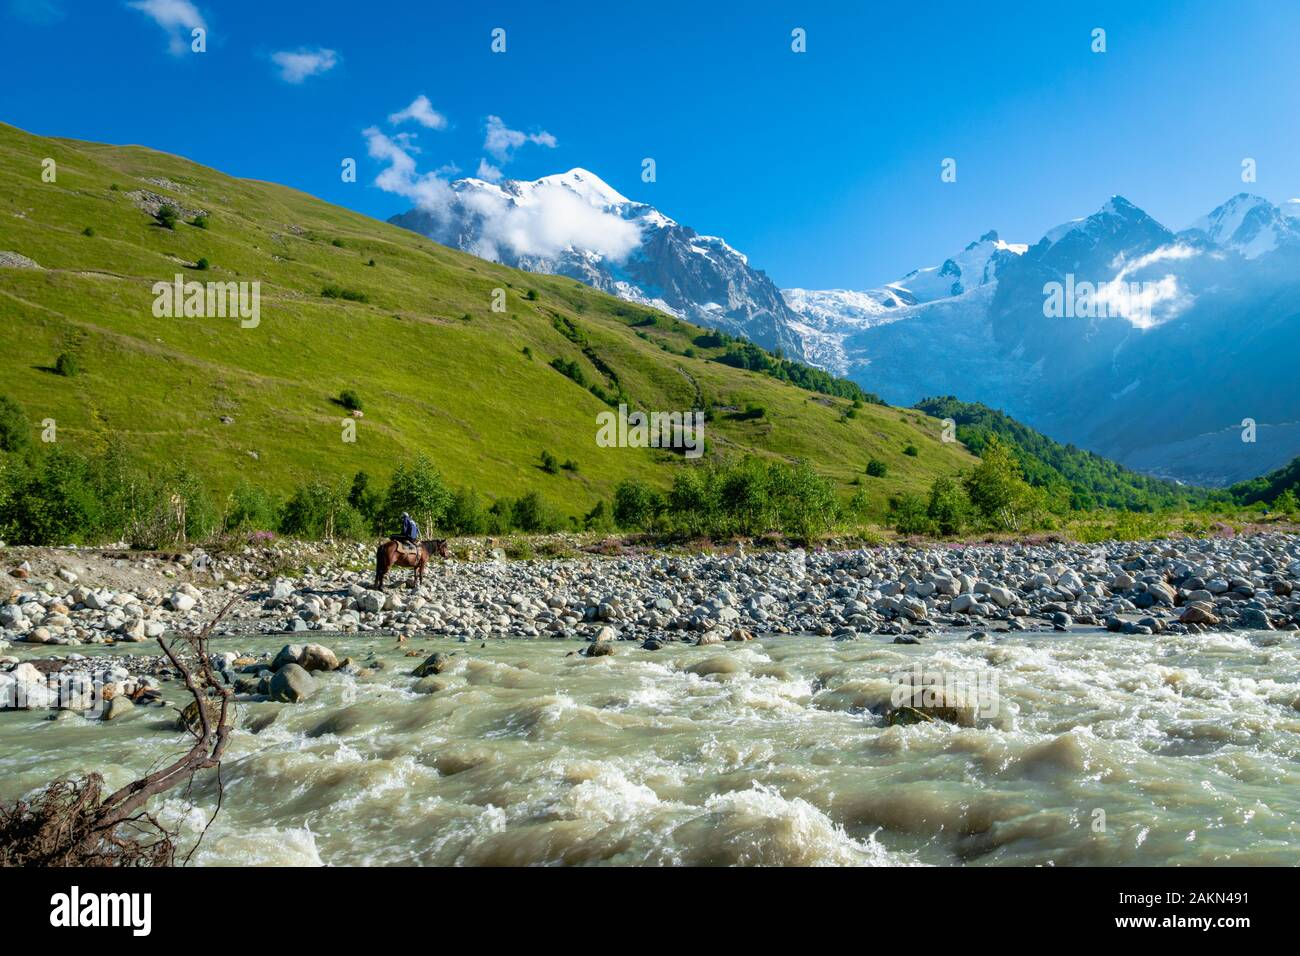 Svaneti landscape with mountains and river on the trekking and hiking route near Mestia village in Svaneti region, Georgia. Stock Photo